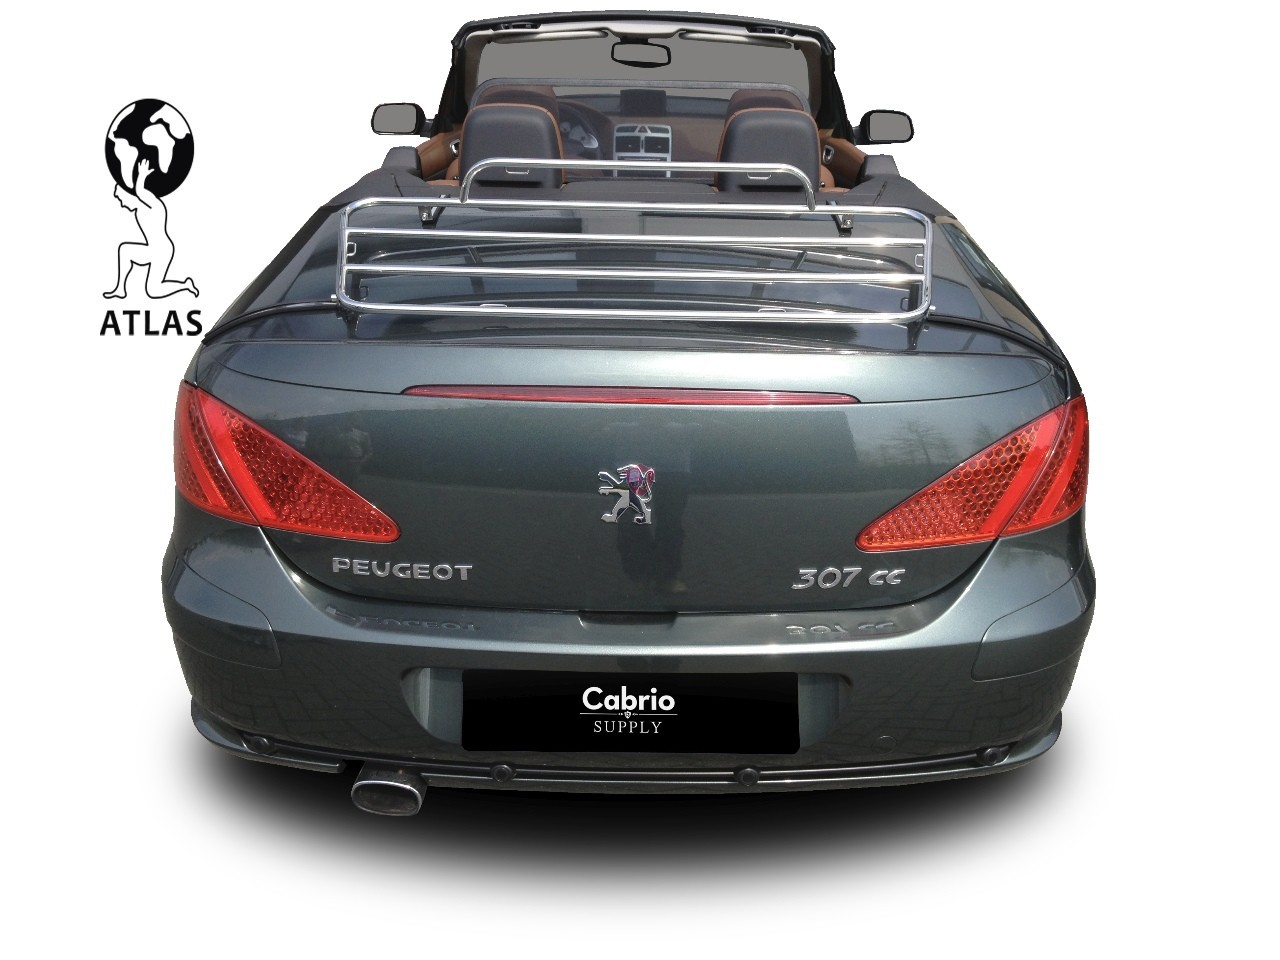 peugeot 307 cc bagagerek 2003 2008 cabrio supply. Black Bedroom Furniture Sets. Home Design Ideas